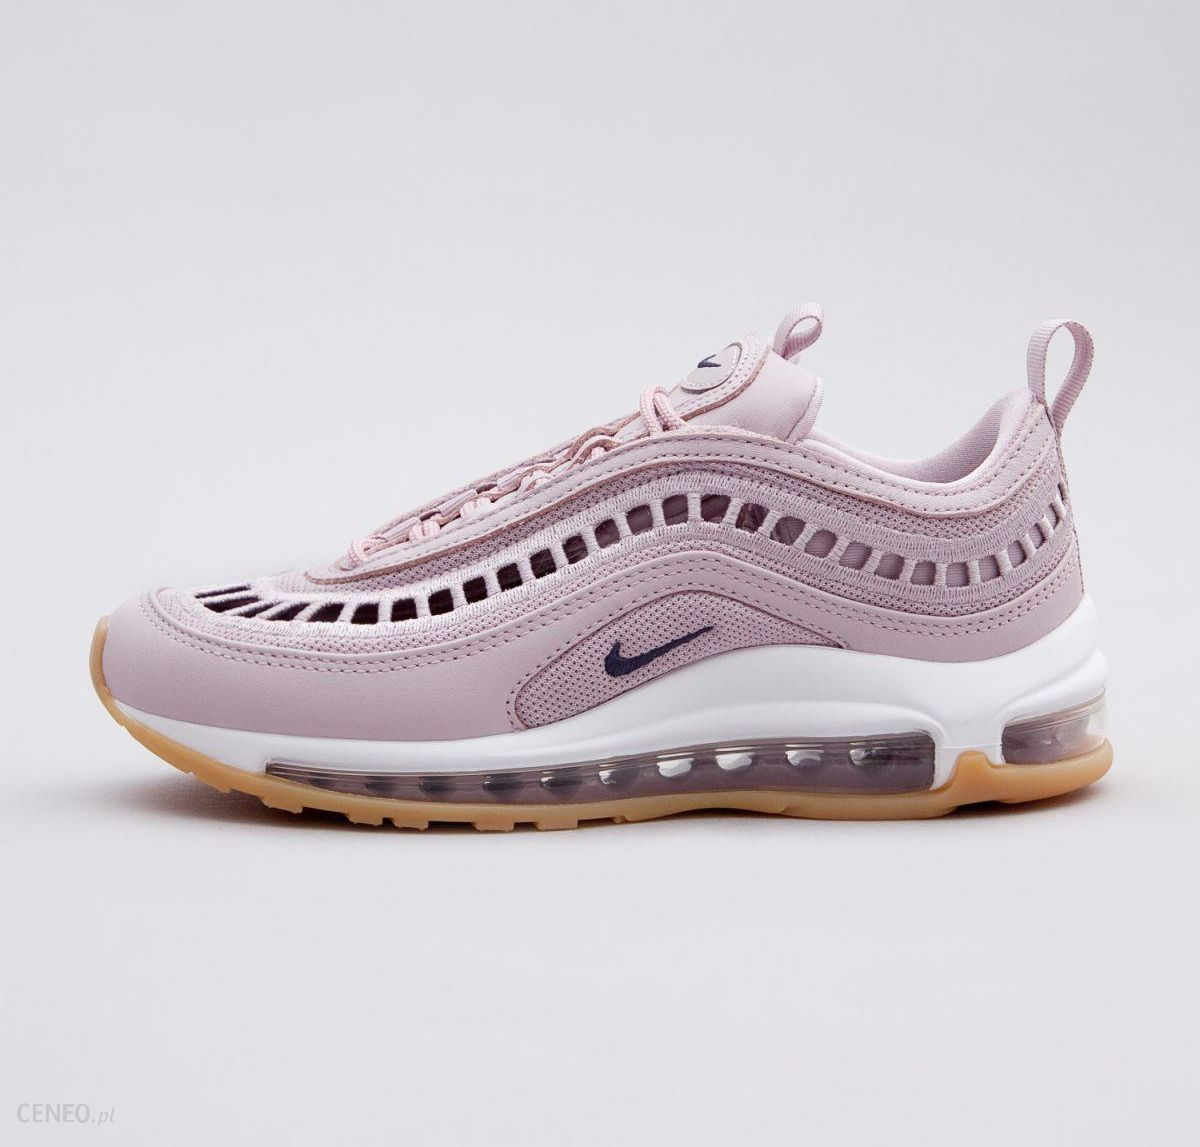 Nike WMNS AIR MAX 97 ULTRA '17 SI AO2326 600 Ceny i opinie Ceneo.pl